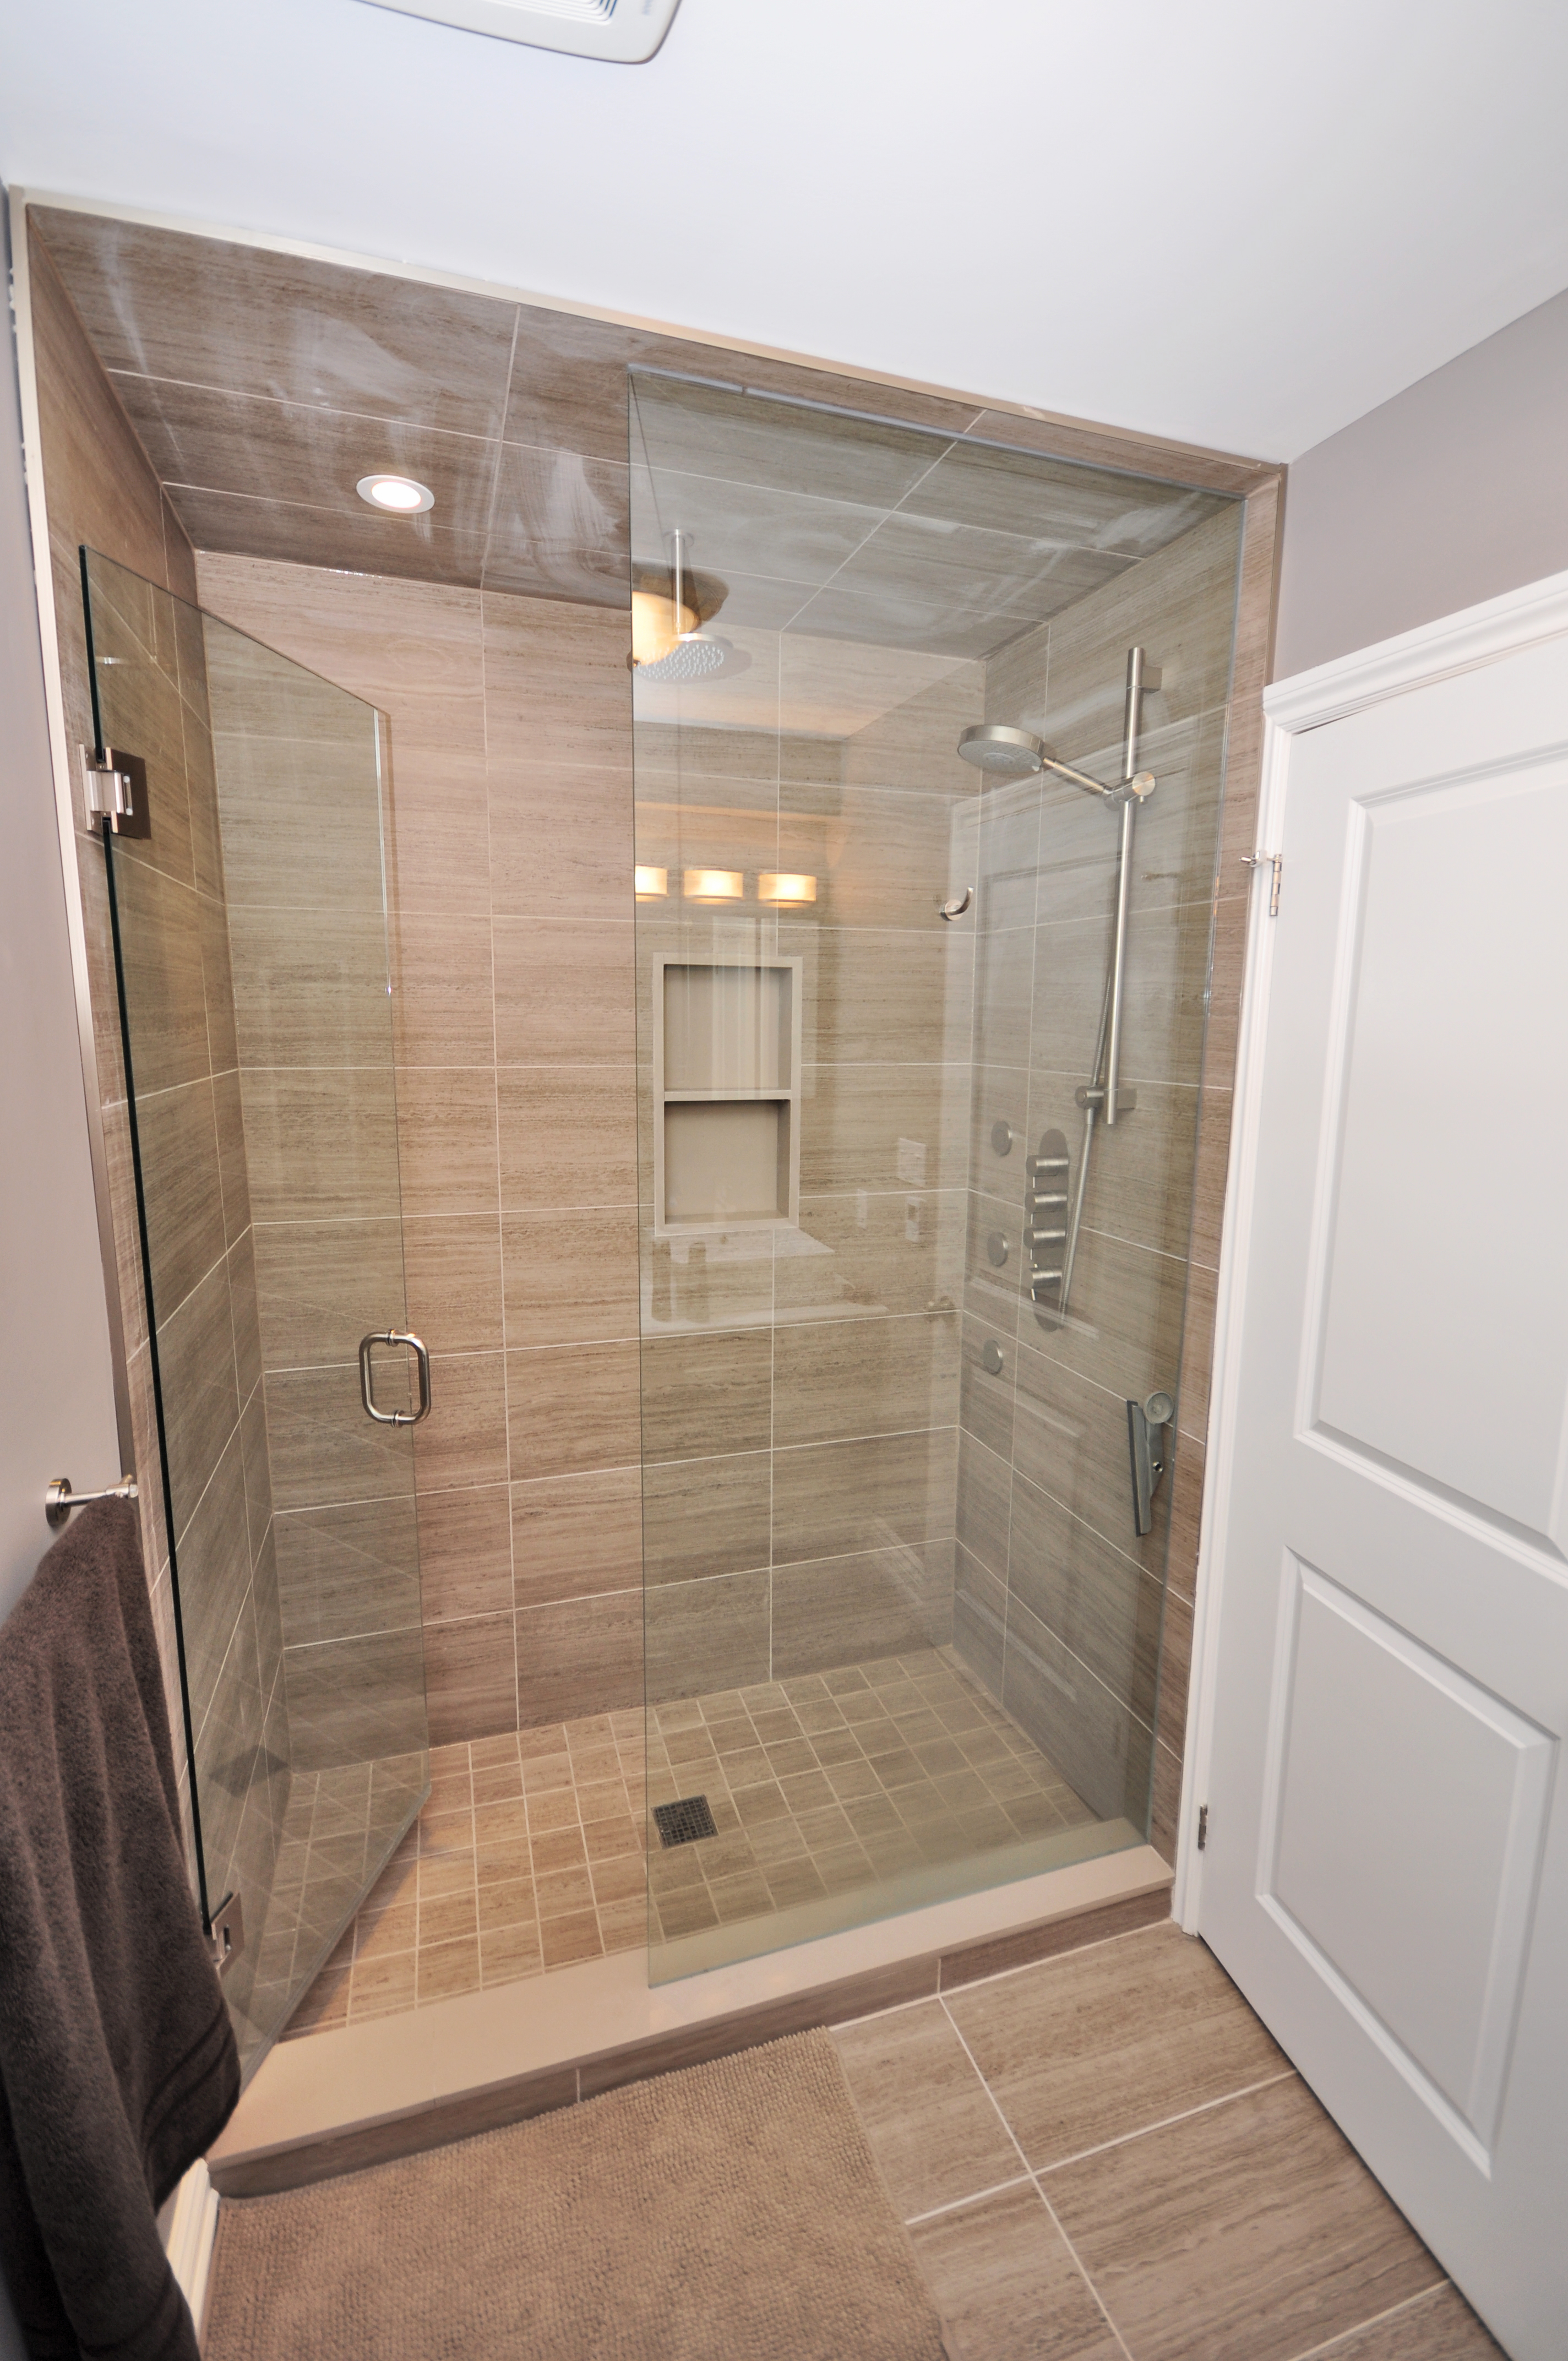 Bathroom renovations mississauga toronto bathroom - Renovating a bathroom what to do first ...